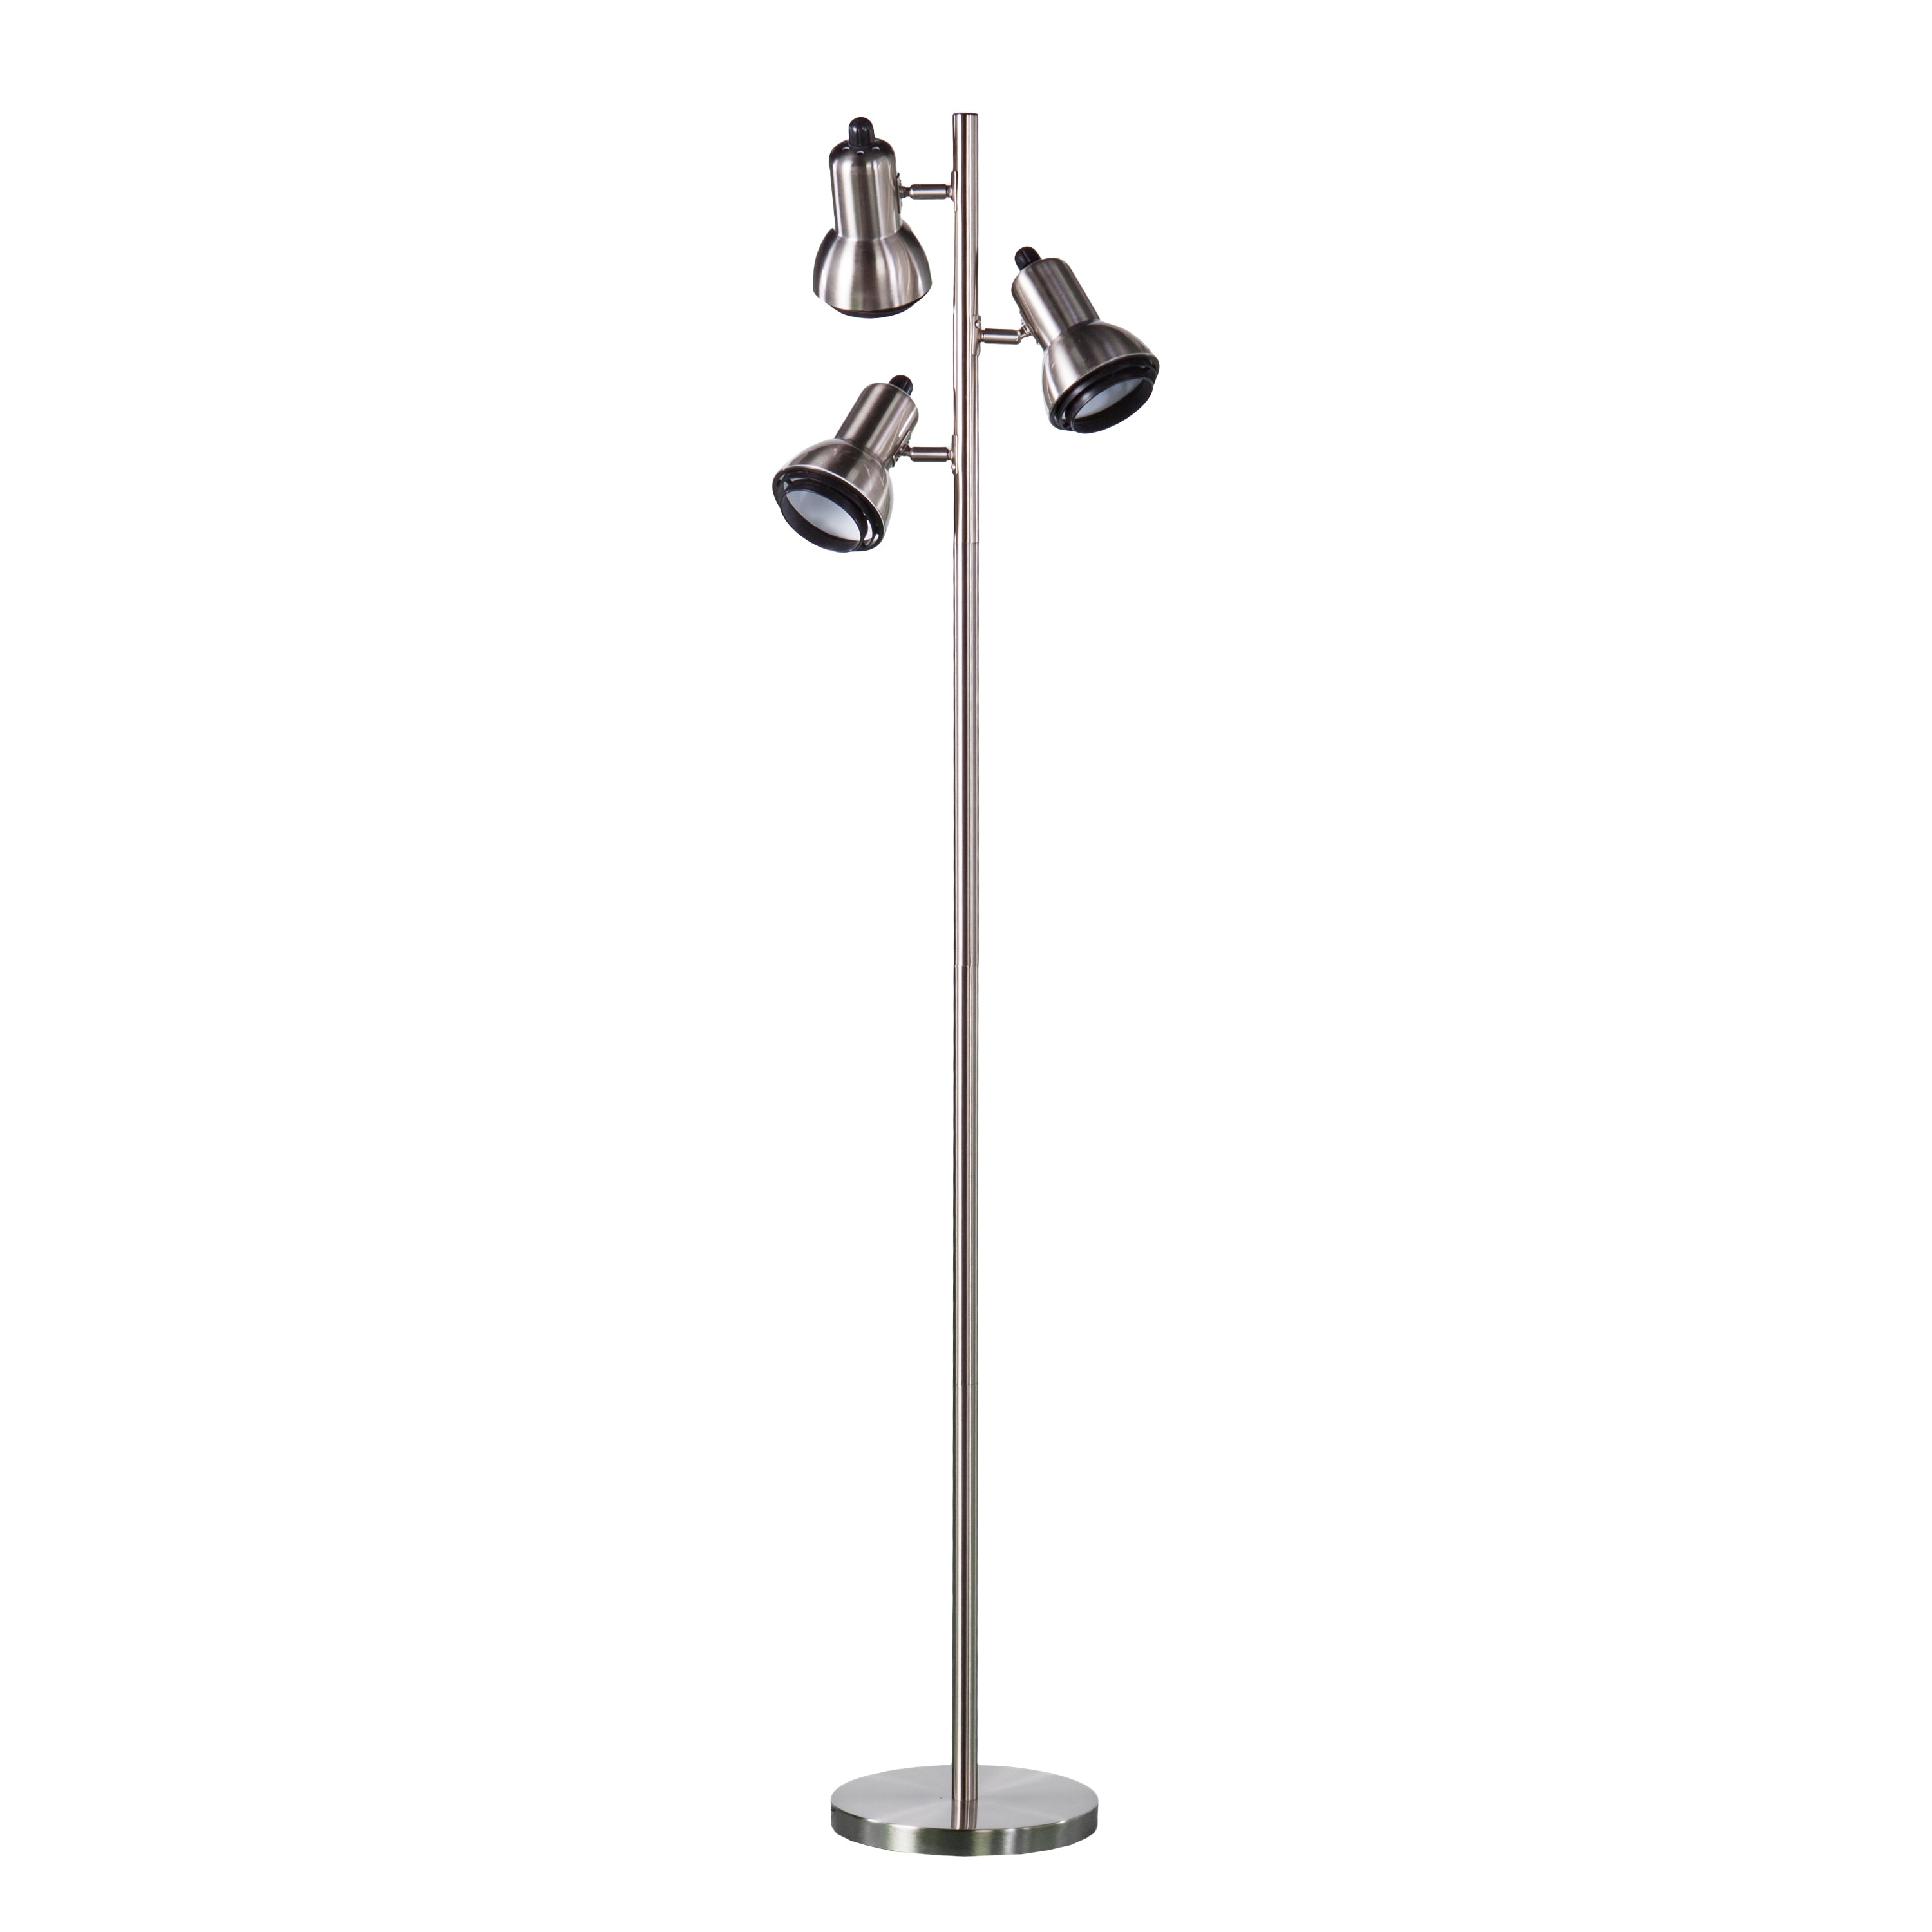 design by contemporary item number champagne floor lamps products signature metal jankin lamp ashley finish